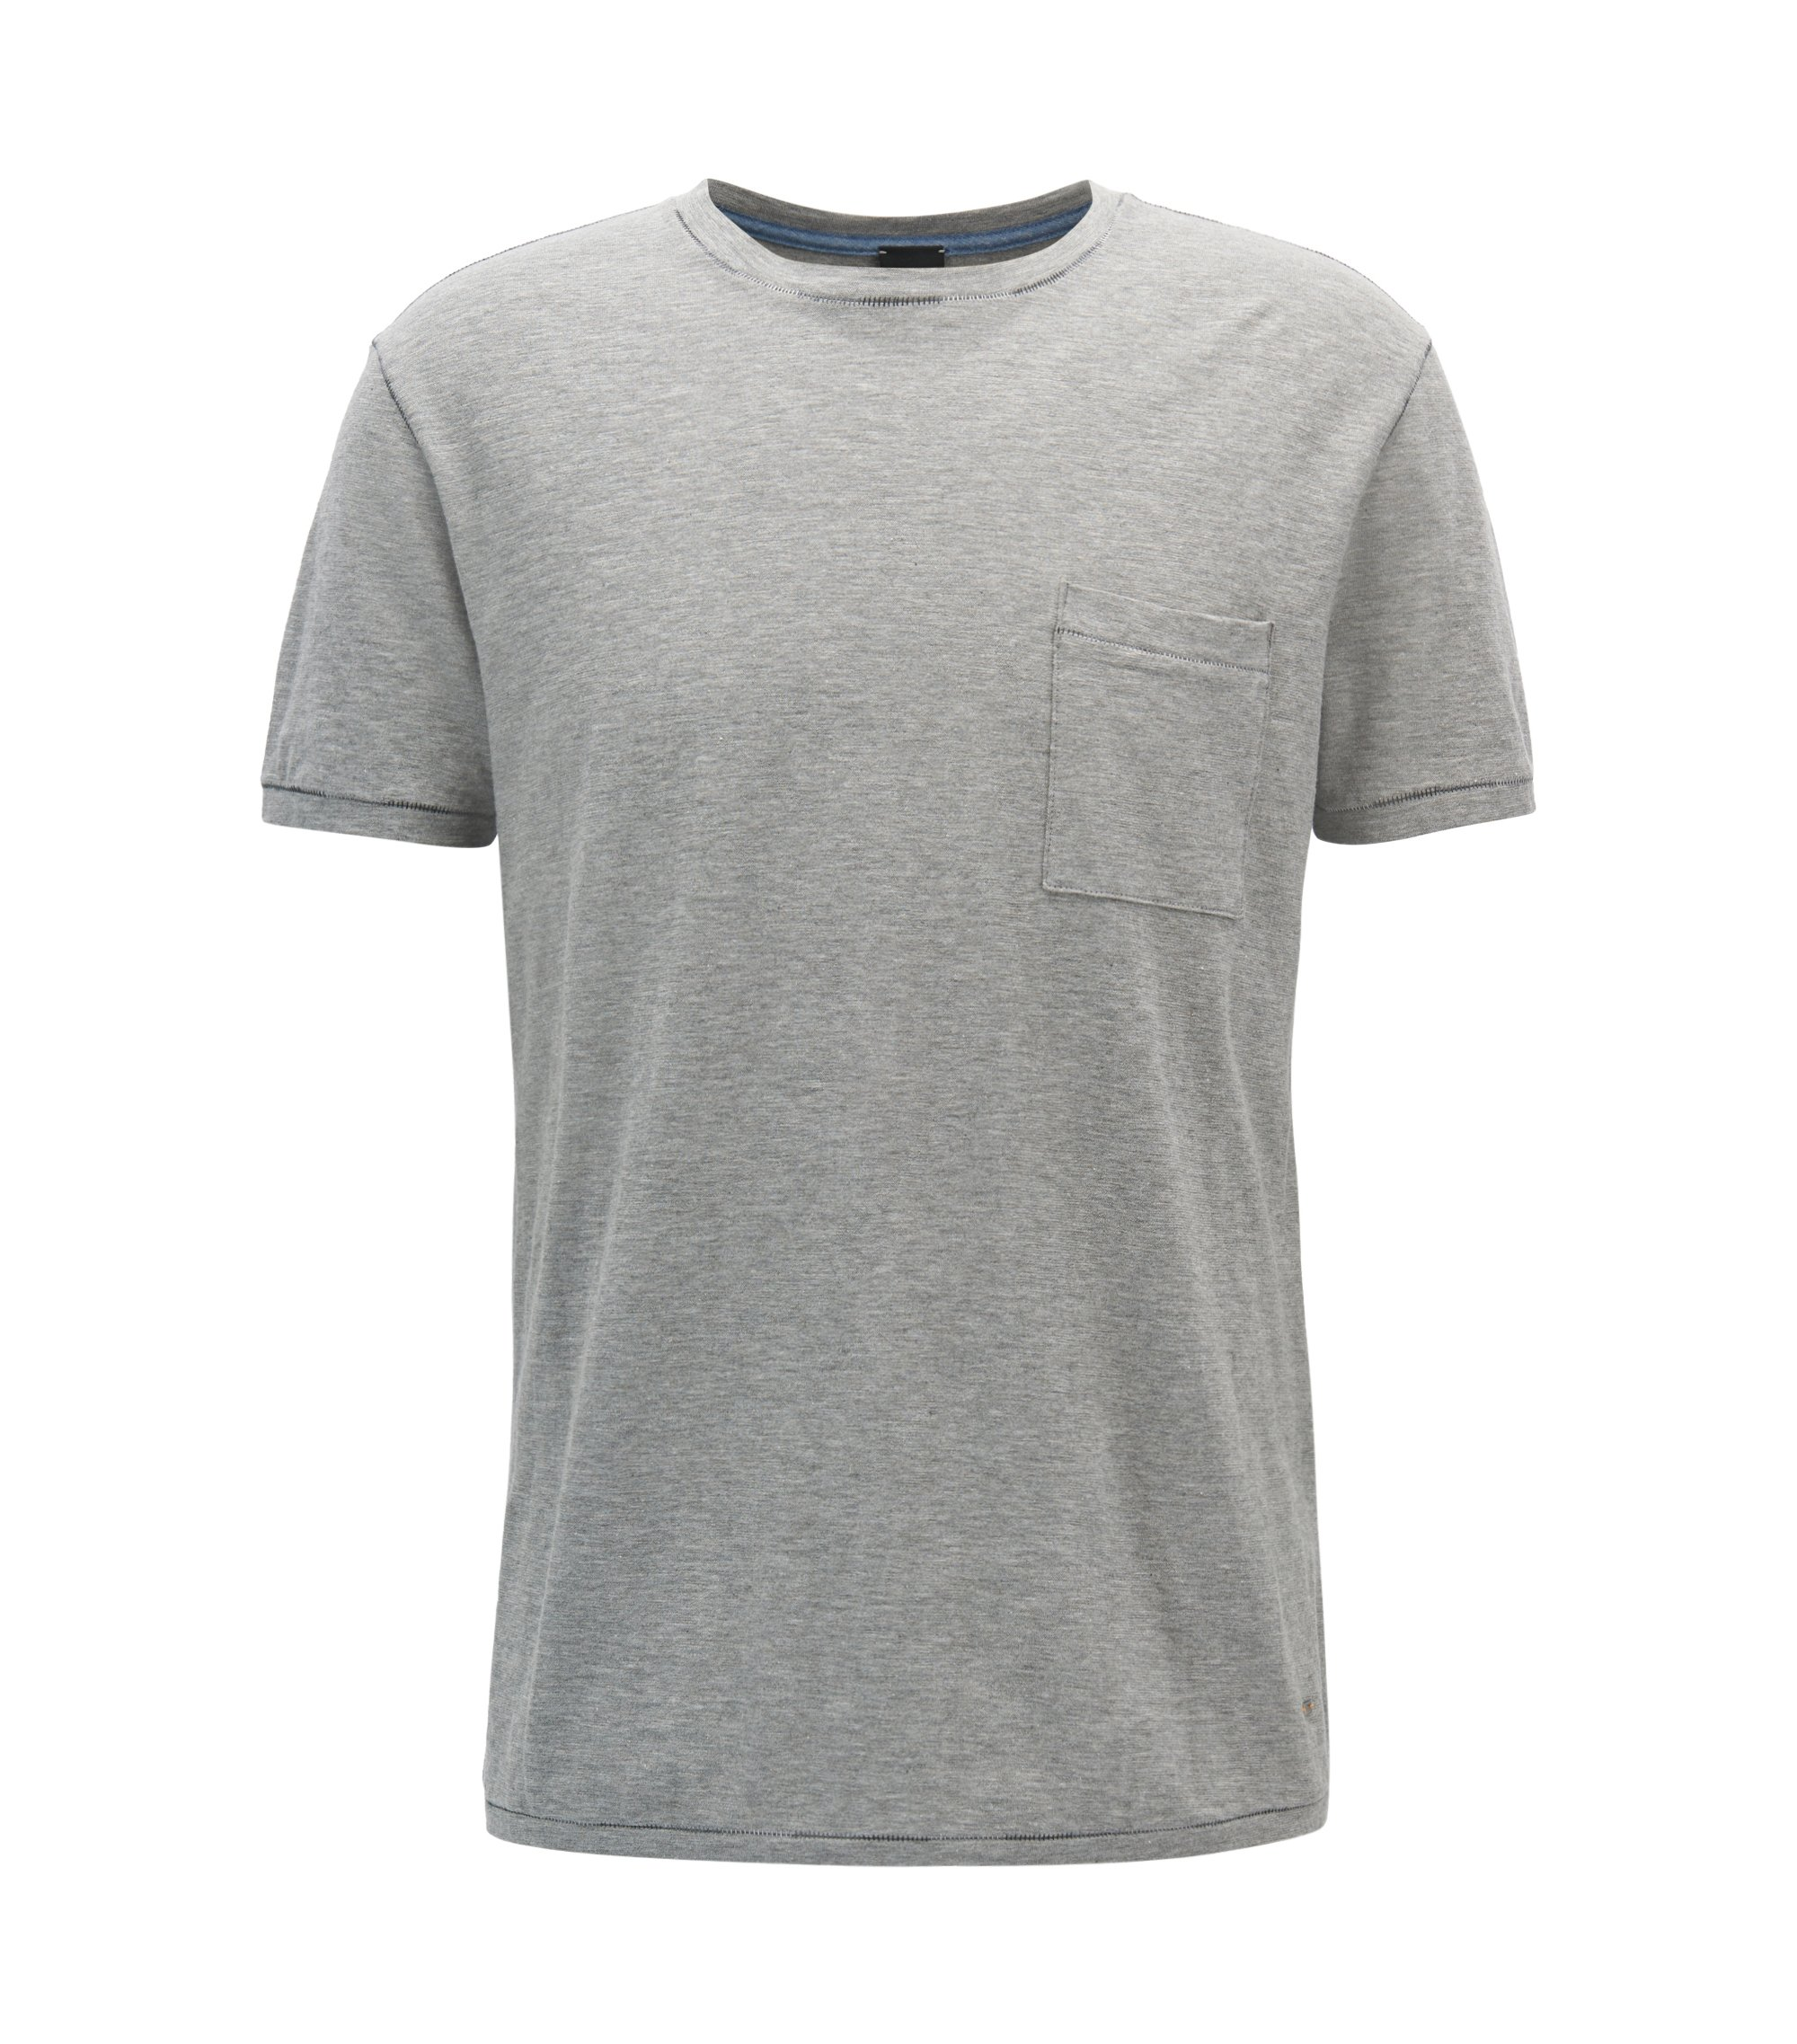 T-shirt Relaxed Fit en coton flammé, Gris chiné